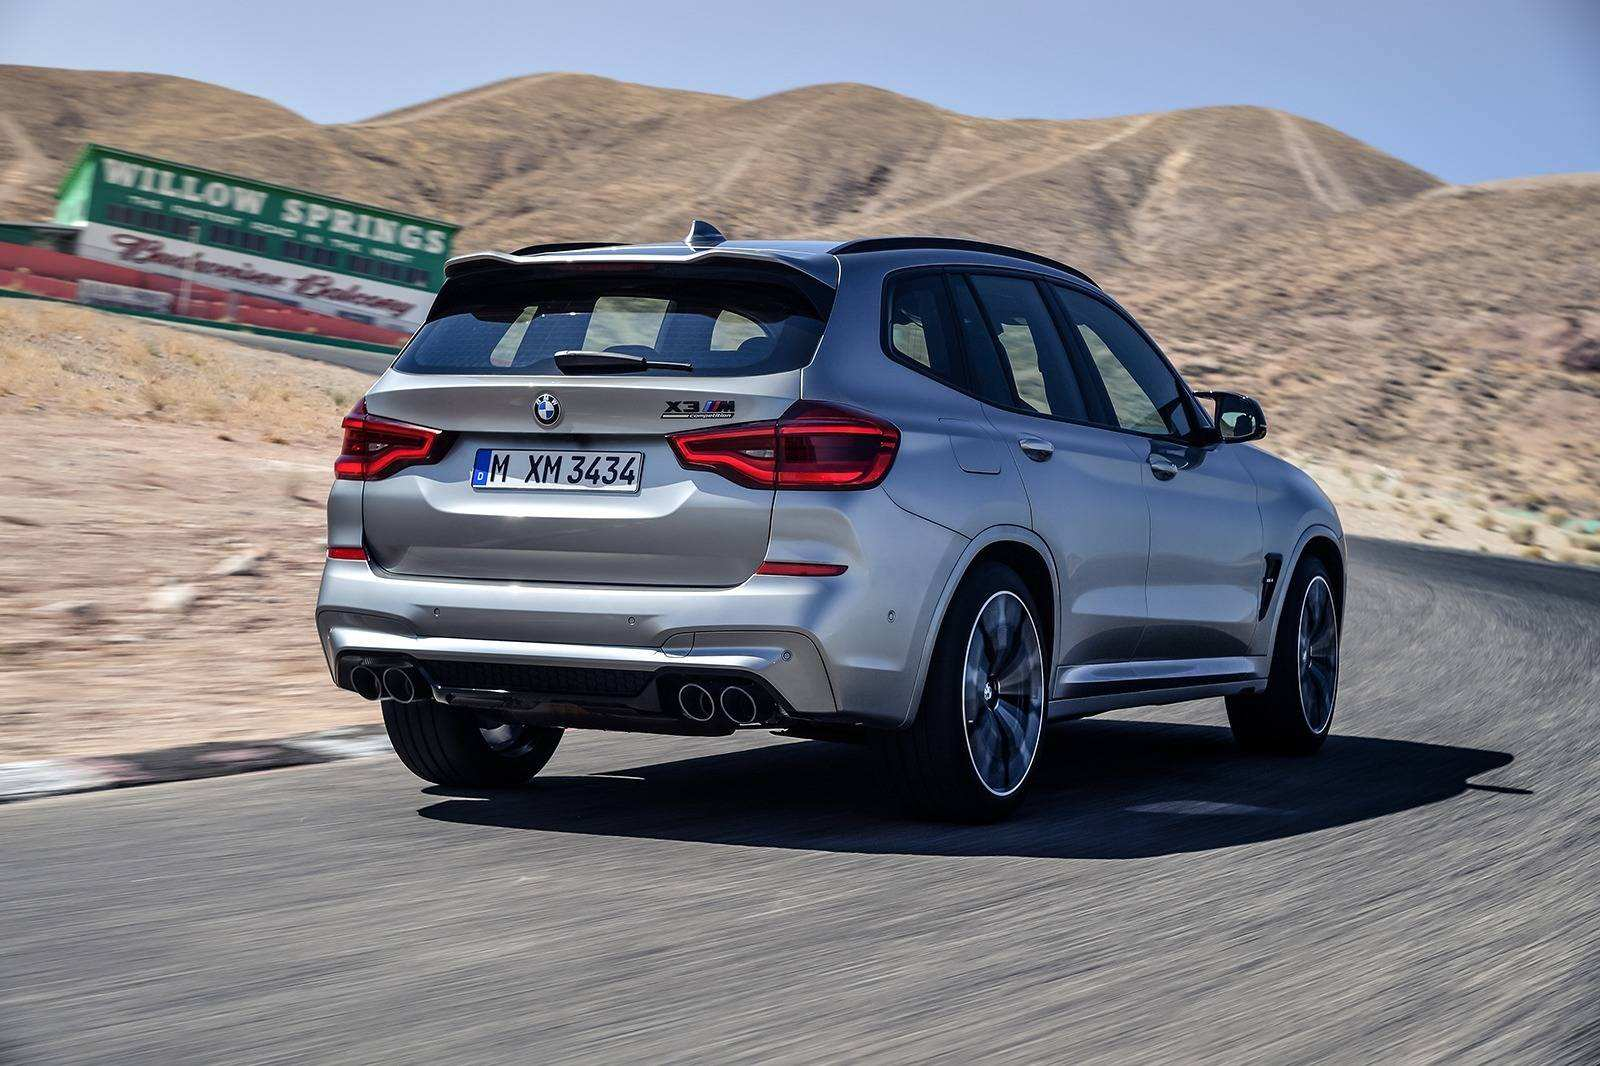 53 The 2020 Bmw X3 Release Date New Concept with 2020 Bmw X3 Release Date